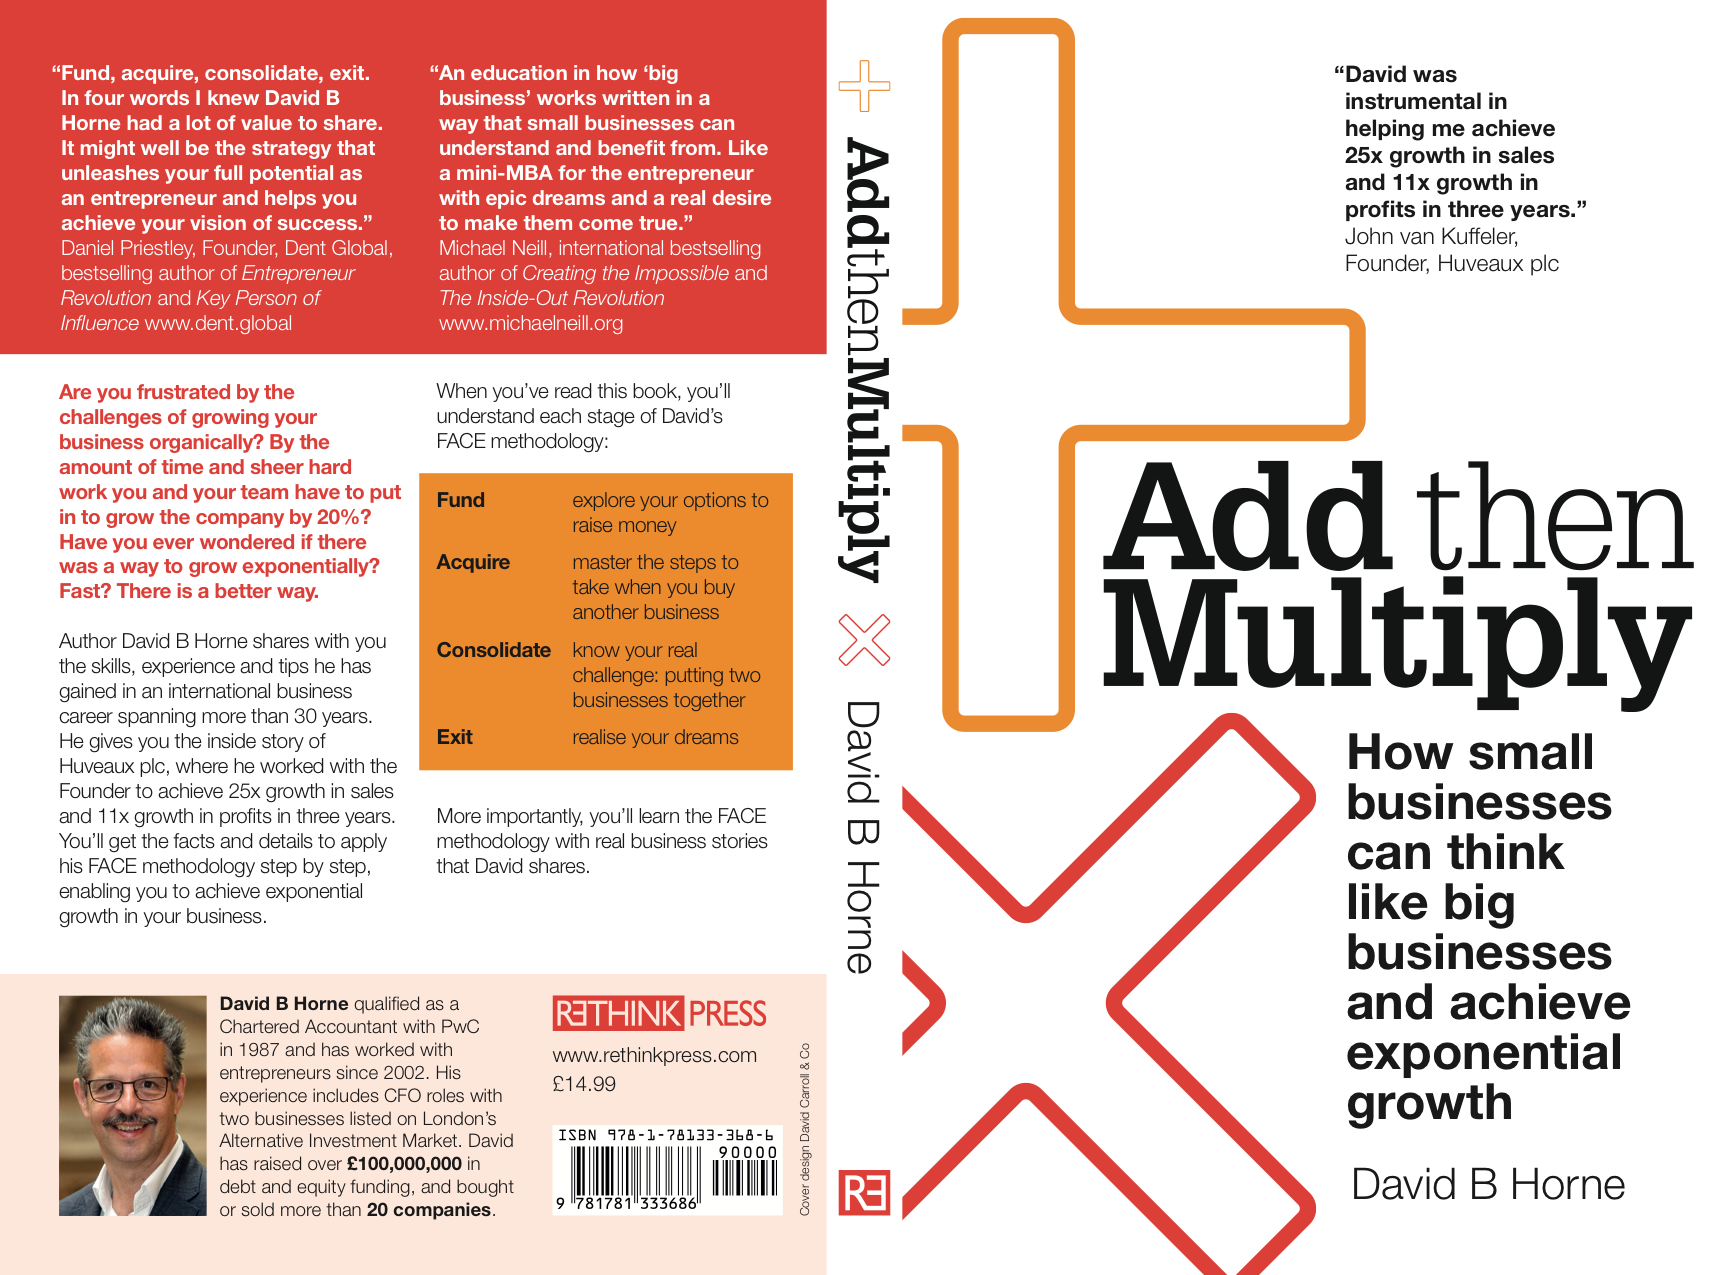 Add Then Multiply: How Small Businesses Can Think Like Big Businesses and Achieve Exponential Growth